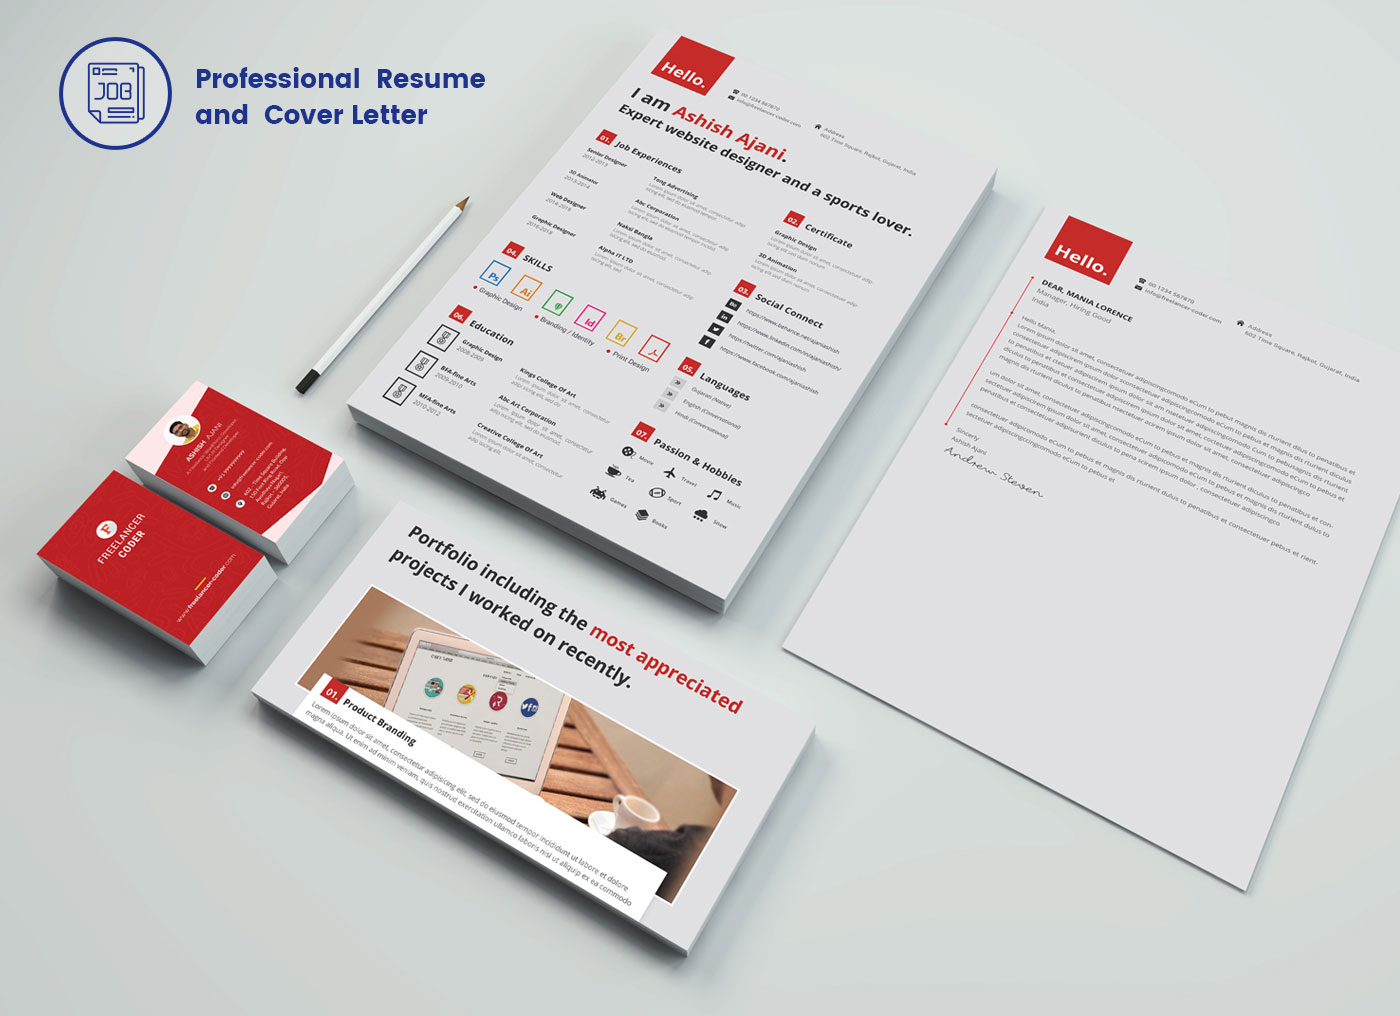 Free-Modern-Resume-Template-Cover-Letter-&-Portfolio-in-PSD-for-Web-Designer-Coder (2)